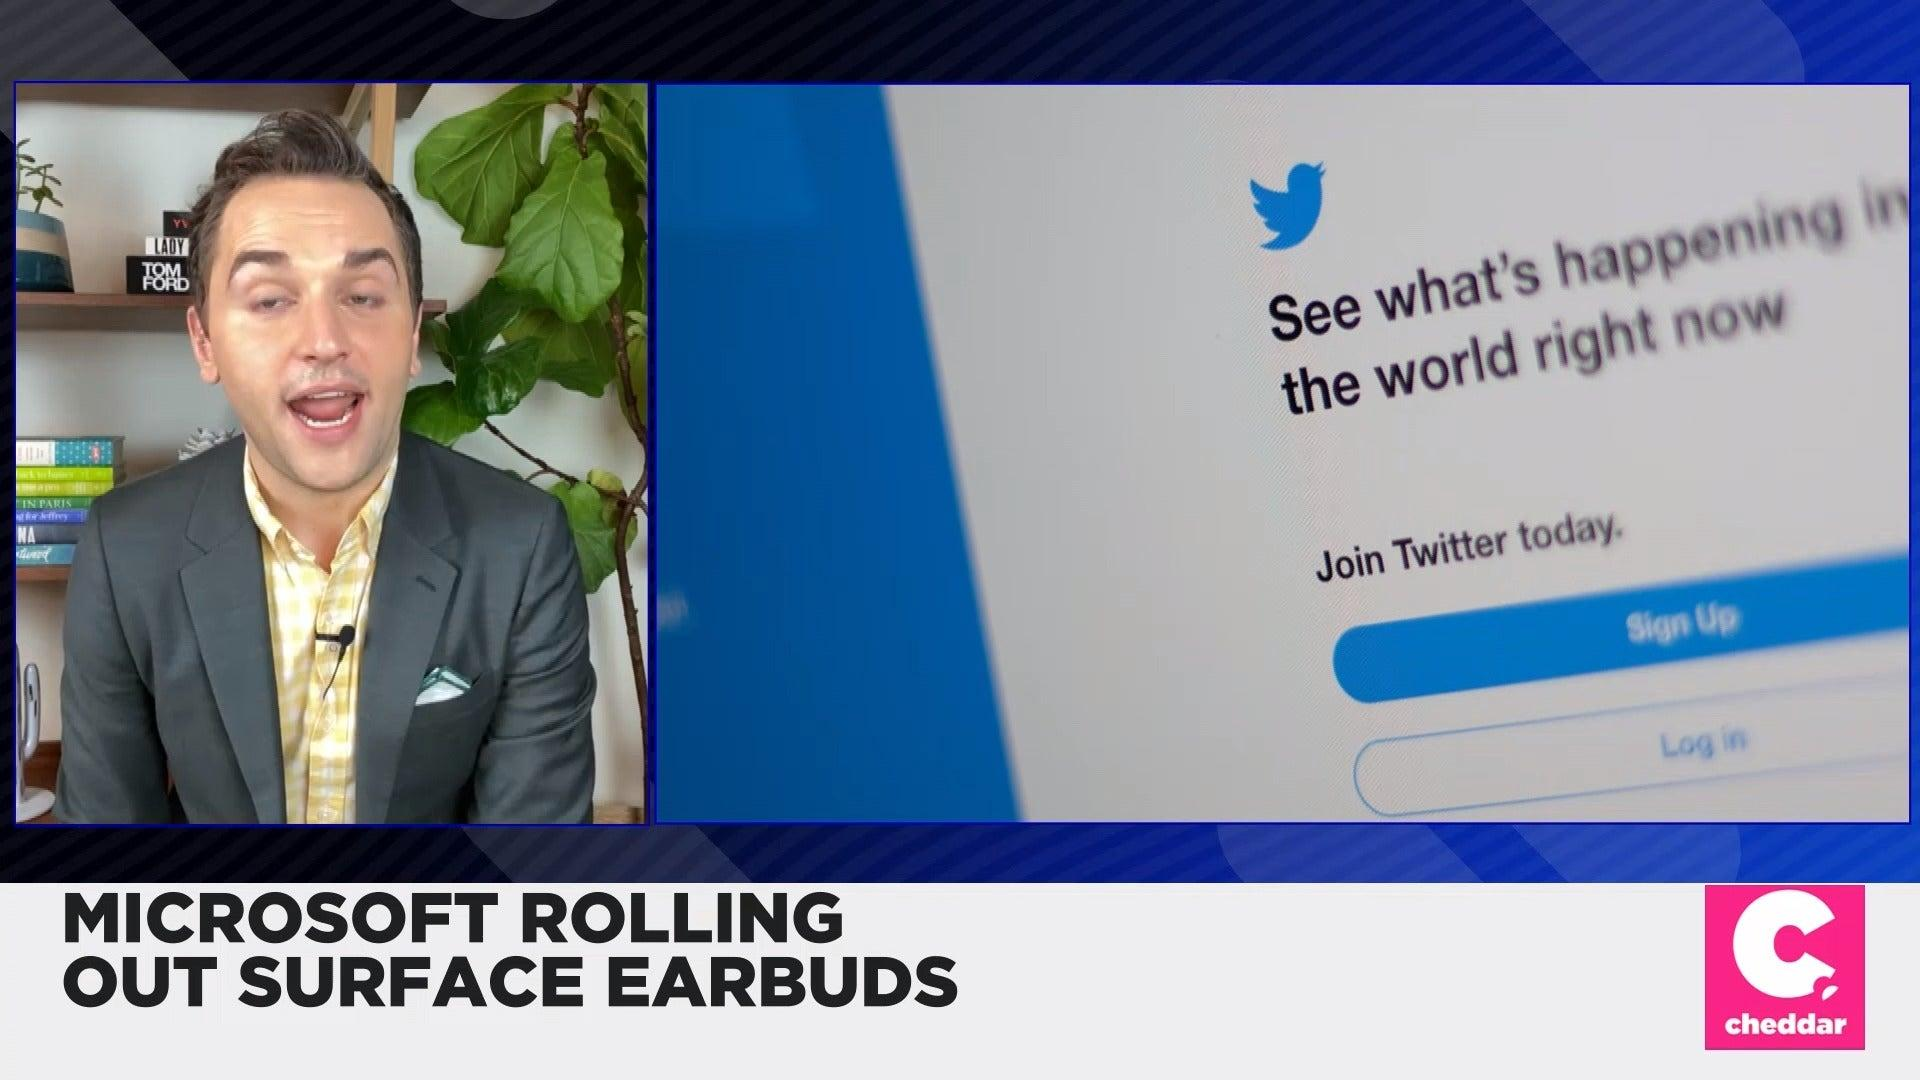 Microsoft Rolling Out Surface Earbuds